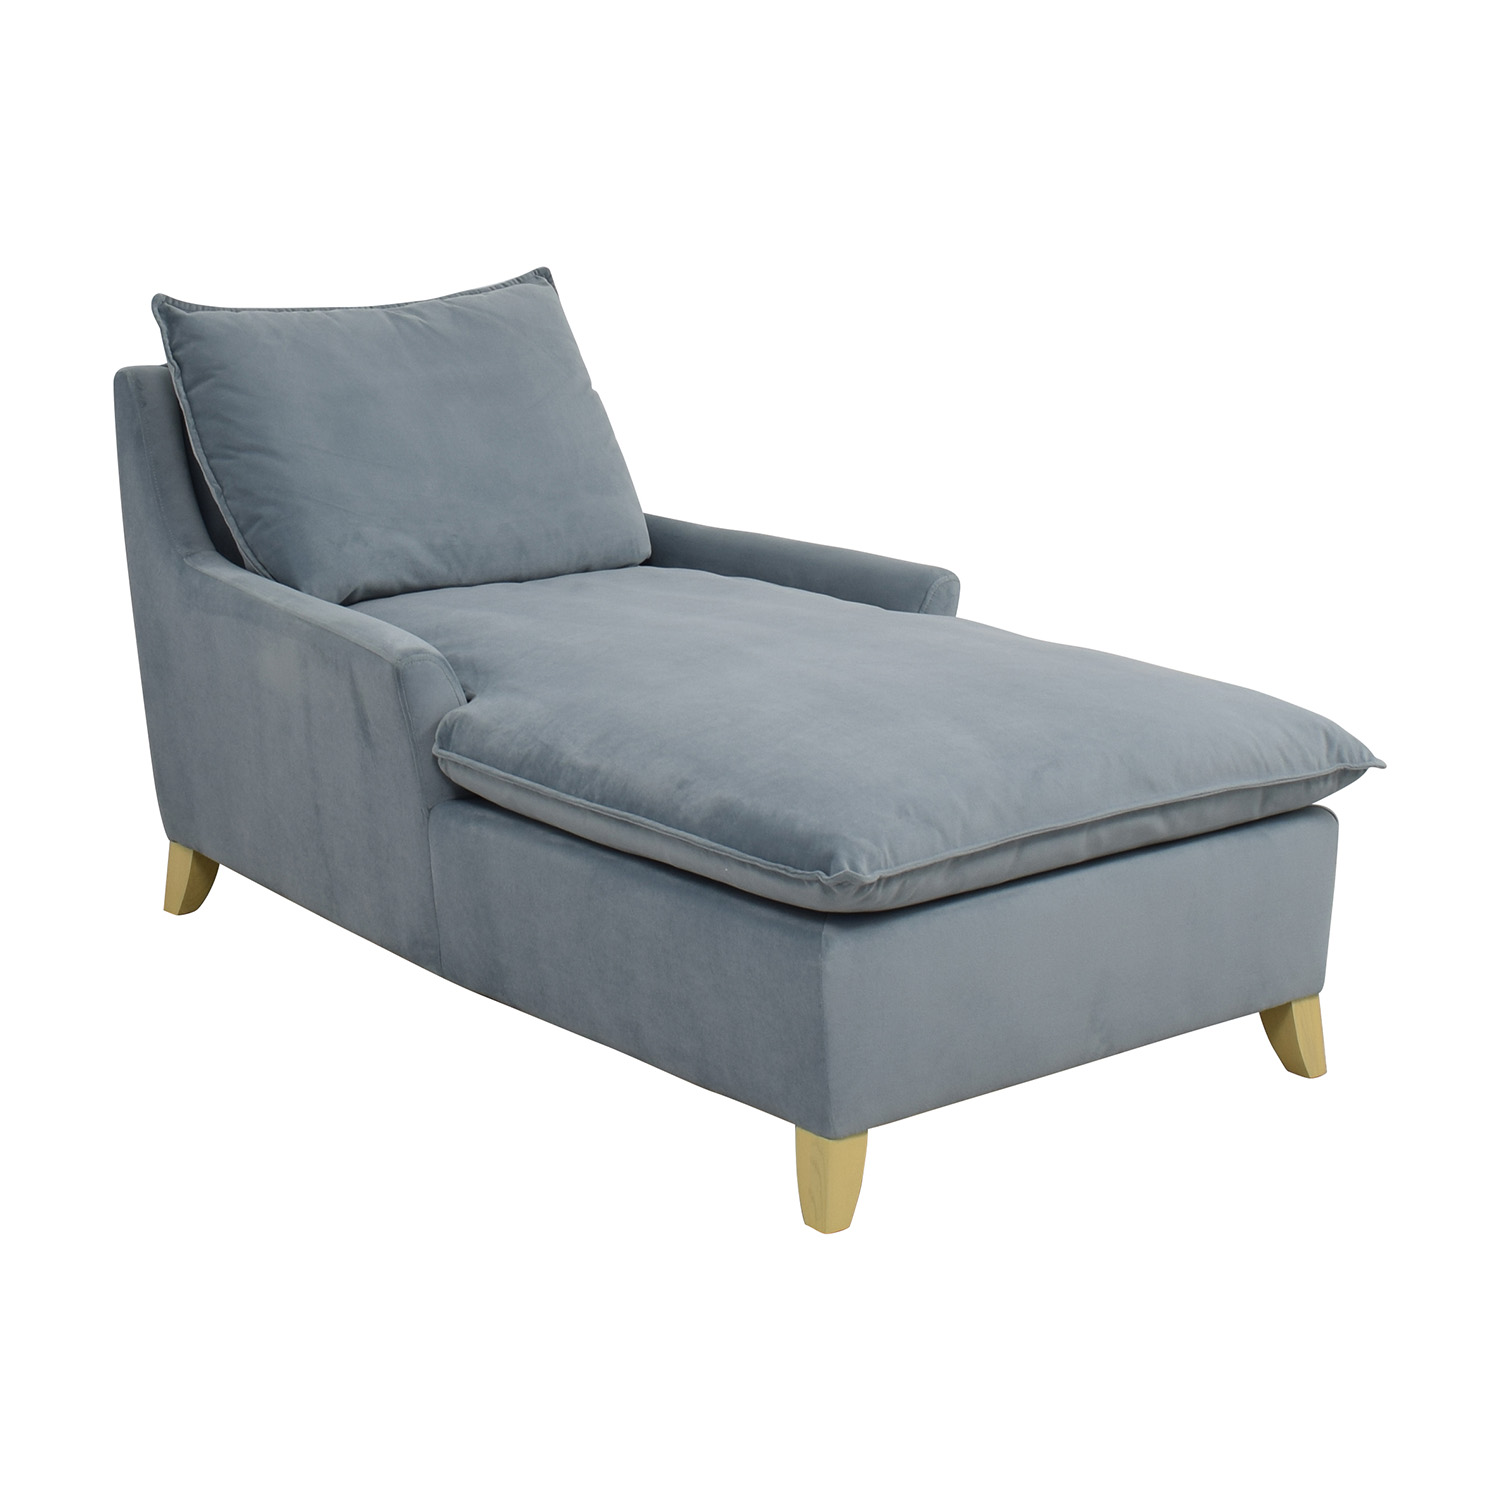 72 off west elm west elm bliss steel blue velvet lounge for Blue velvet chaise